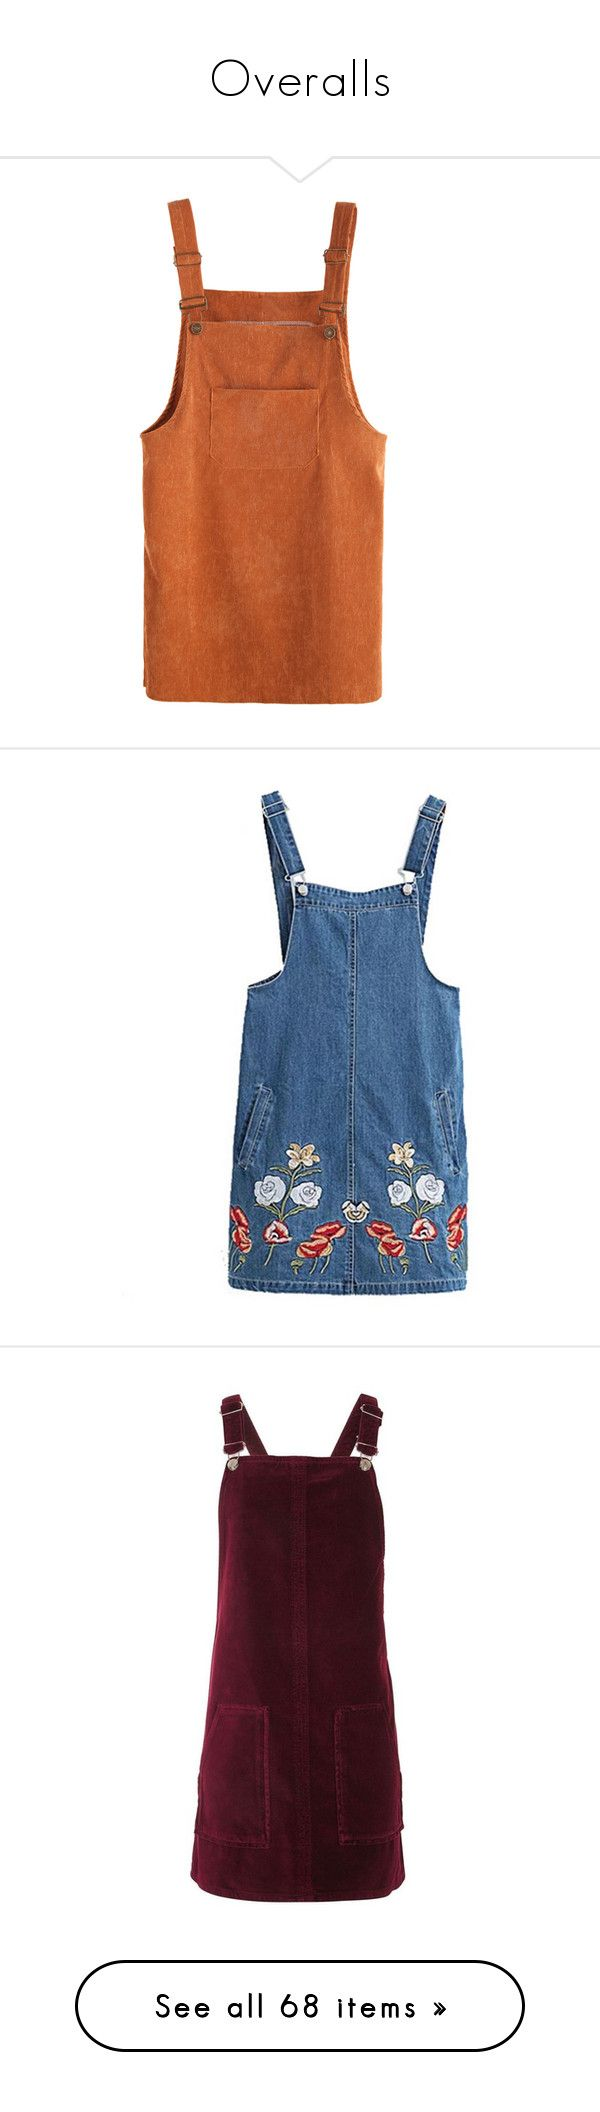 """Overalls"" by ethereale ❤ liked on Polyvore featuring dresses, overalls, bottoms, skirts, khaki, blue, pinafore dress, denim dress, back zipper dress and zip back dress"